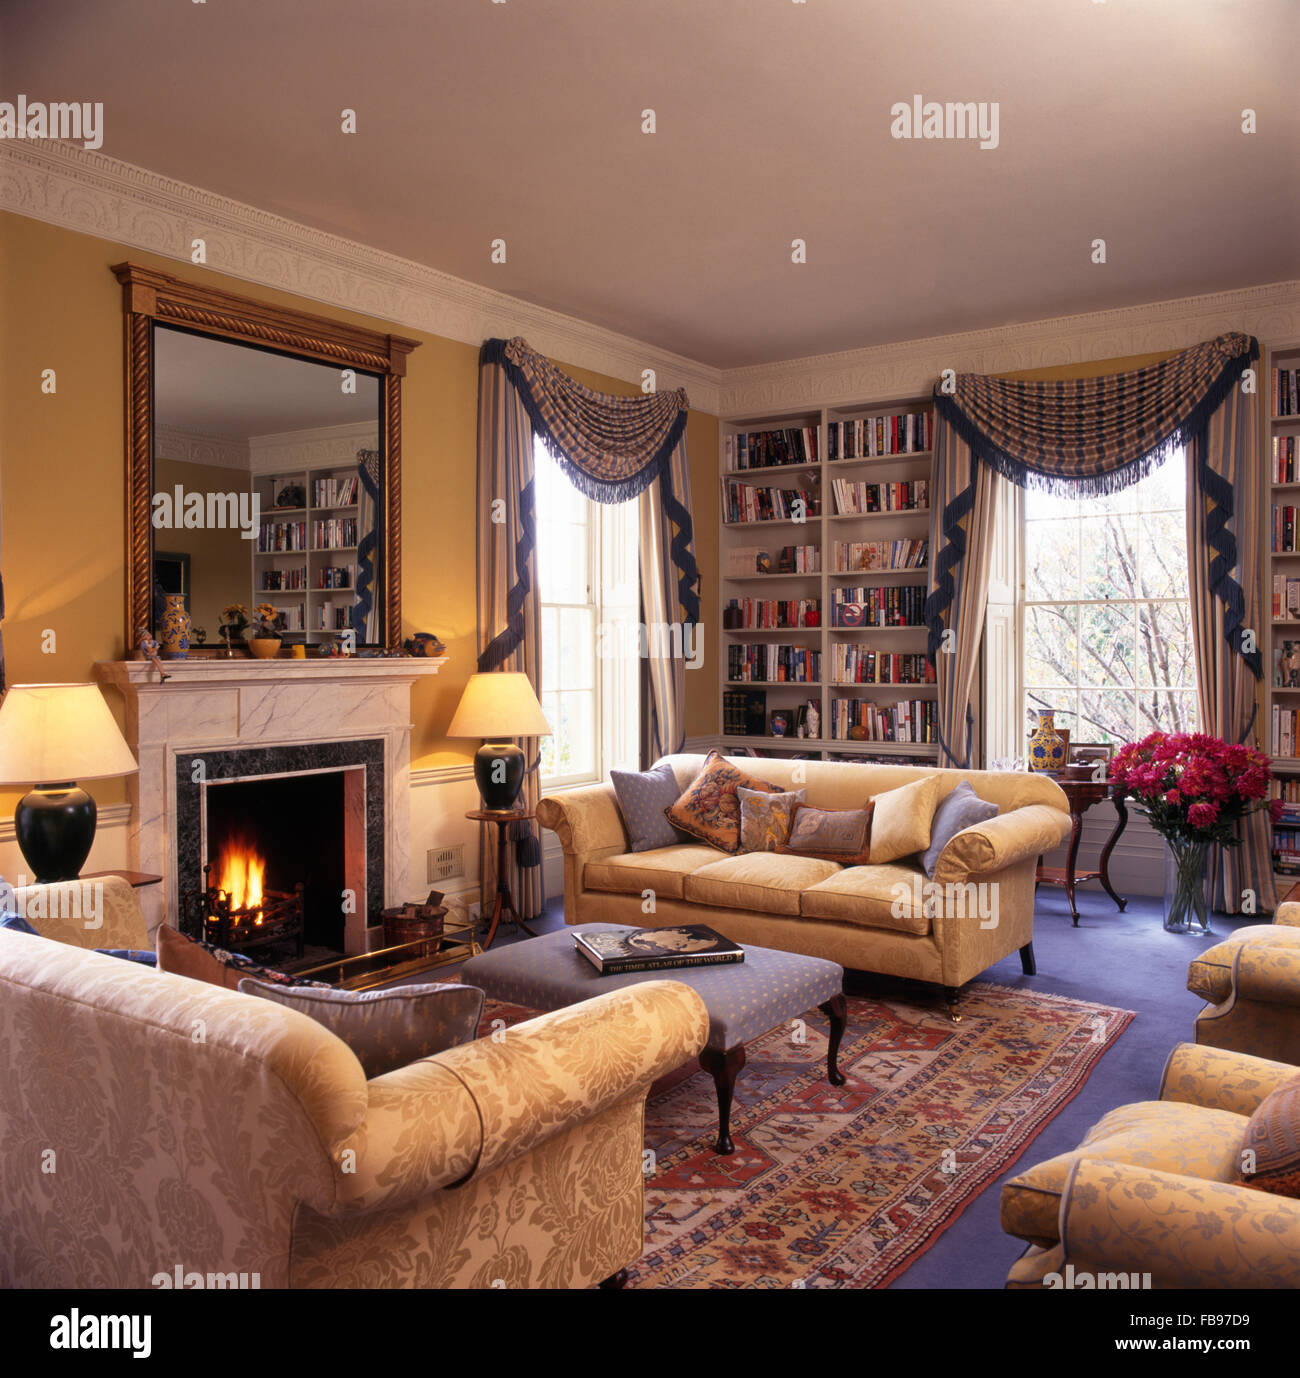 chesterfield sofas either side of fireplace with lighted fire in